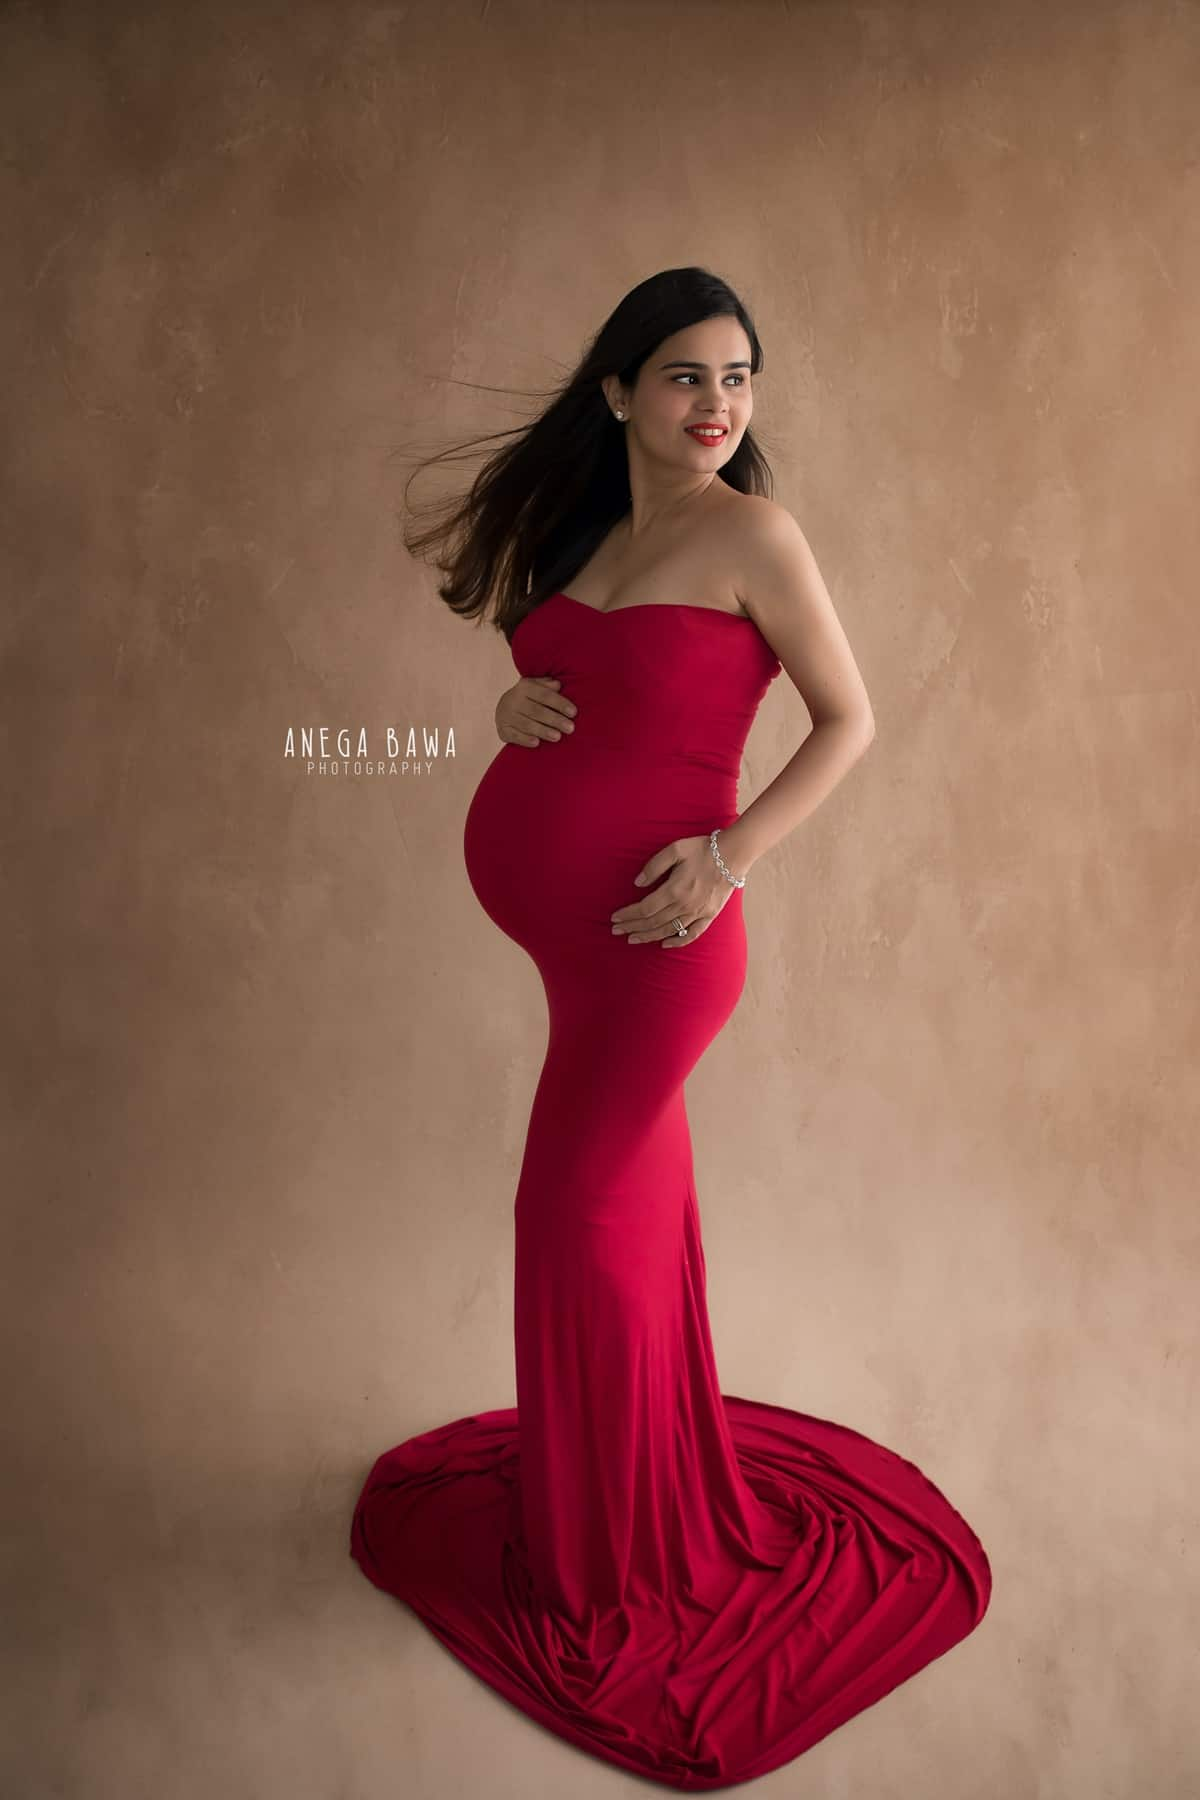 top_pregnancy_photoshoot_delhi_noida_red_outfit_beige_painted_backdrop_anega_bawa (1)